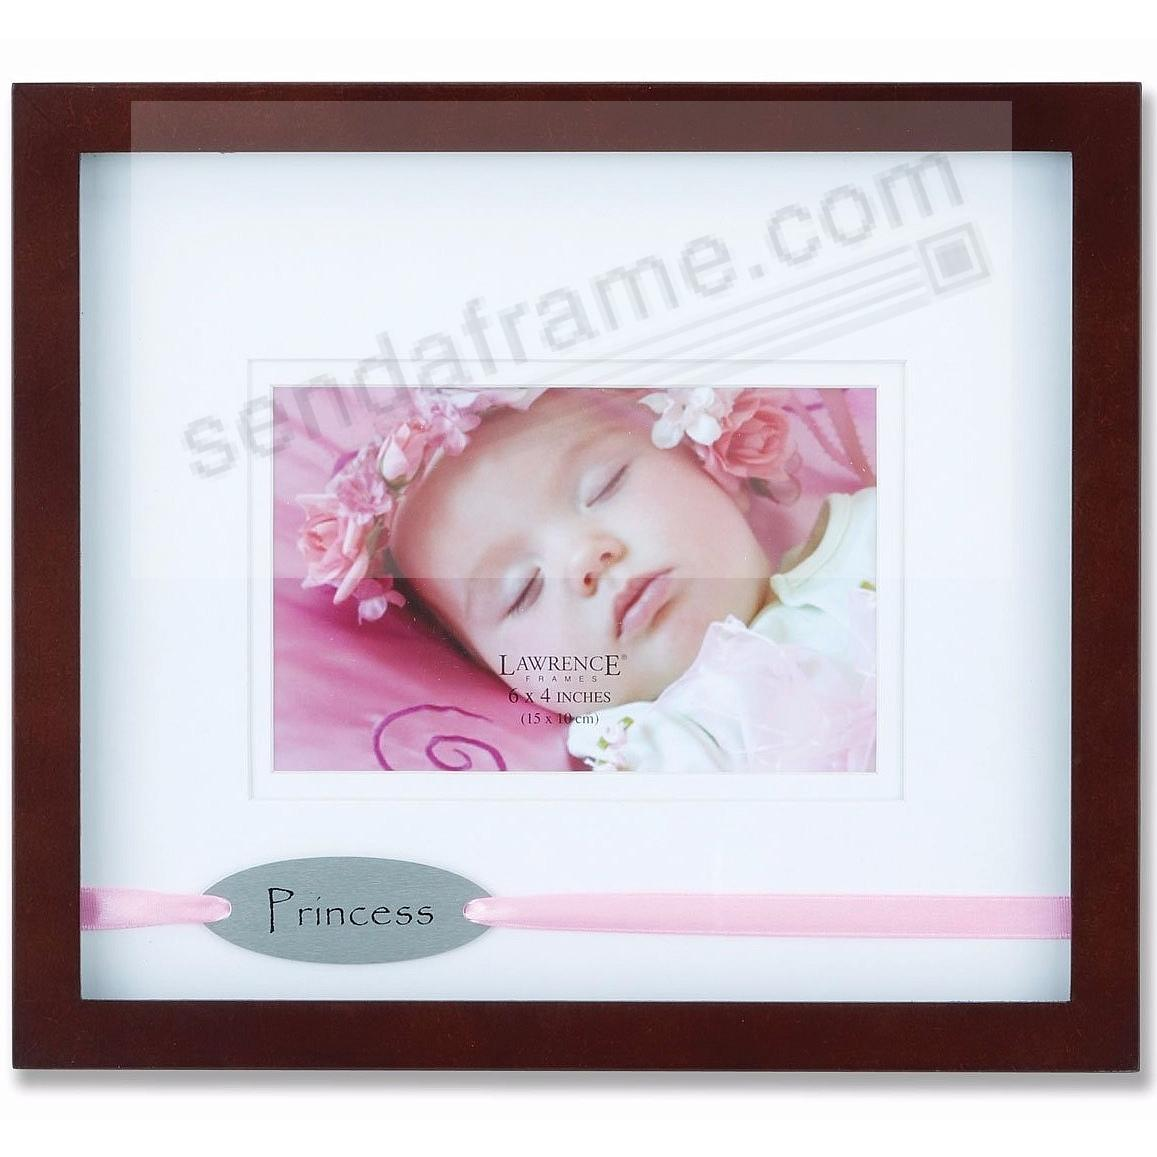 PRINCESS in Walnut Double Matted shadow frame by Lawrence®